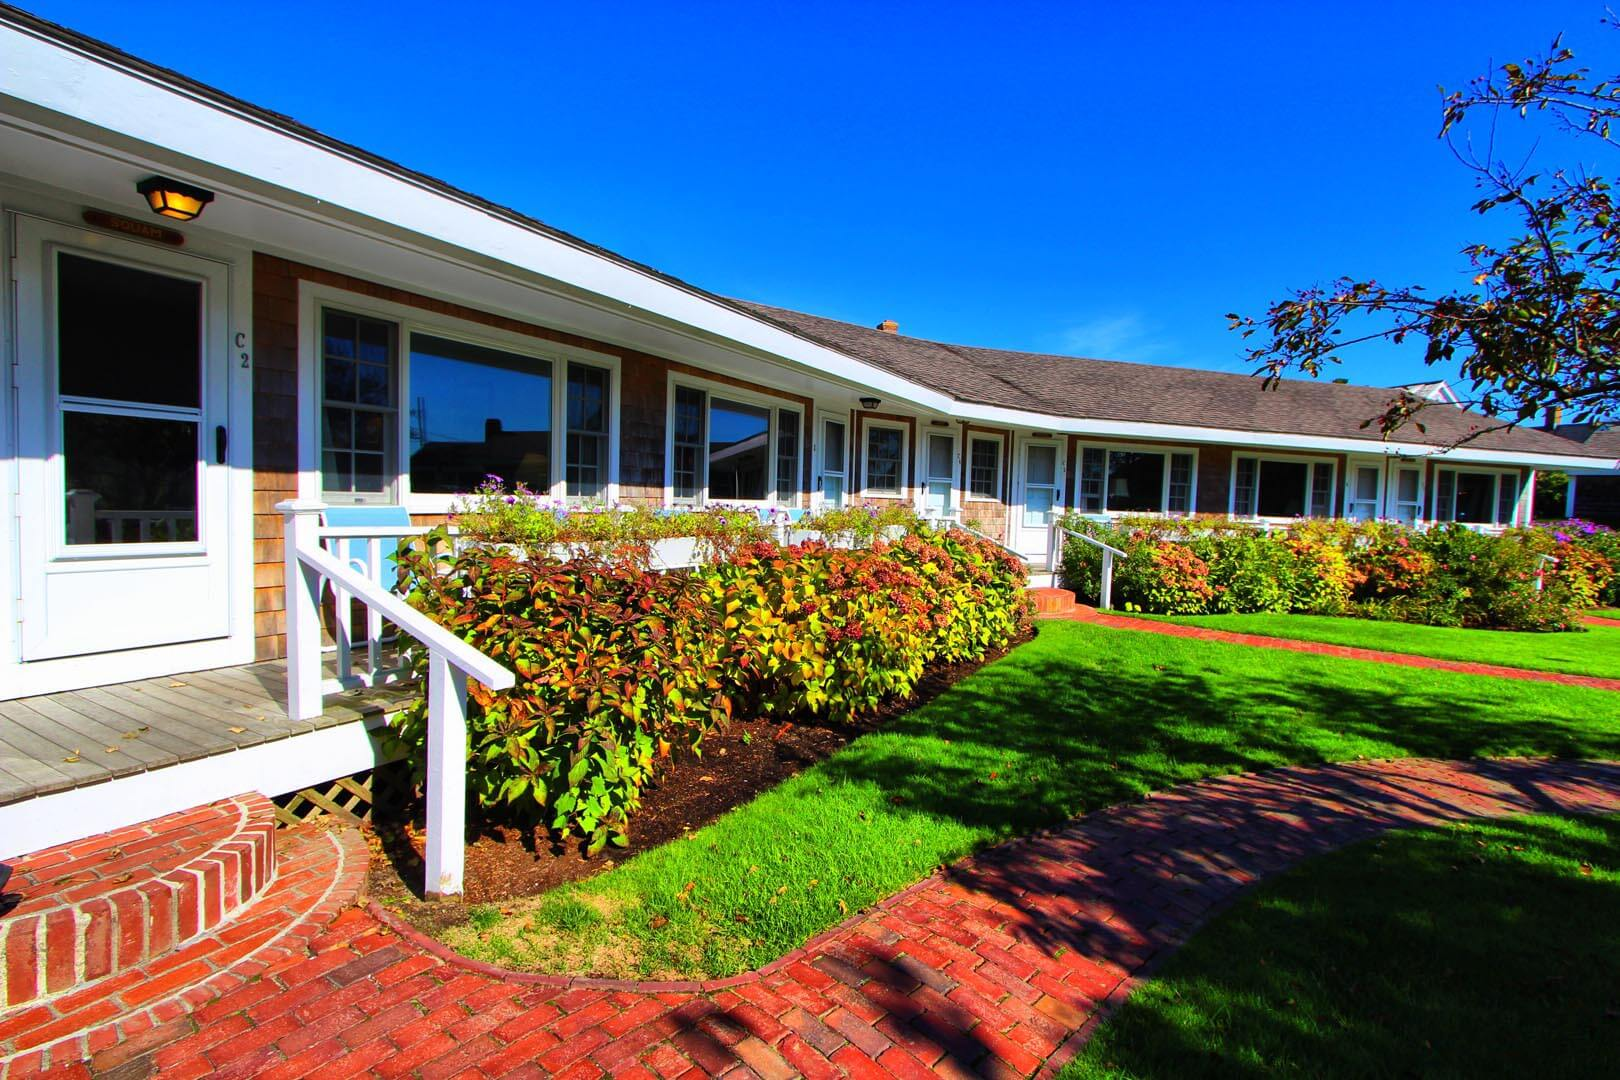 A beautiful unit entrance at the Brant Point Courtyard in Massachusetts.